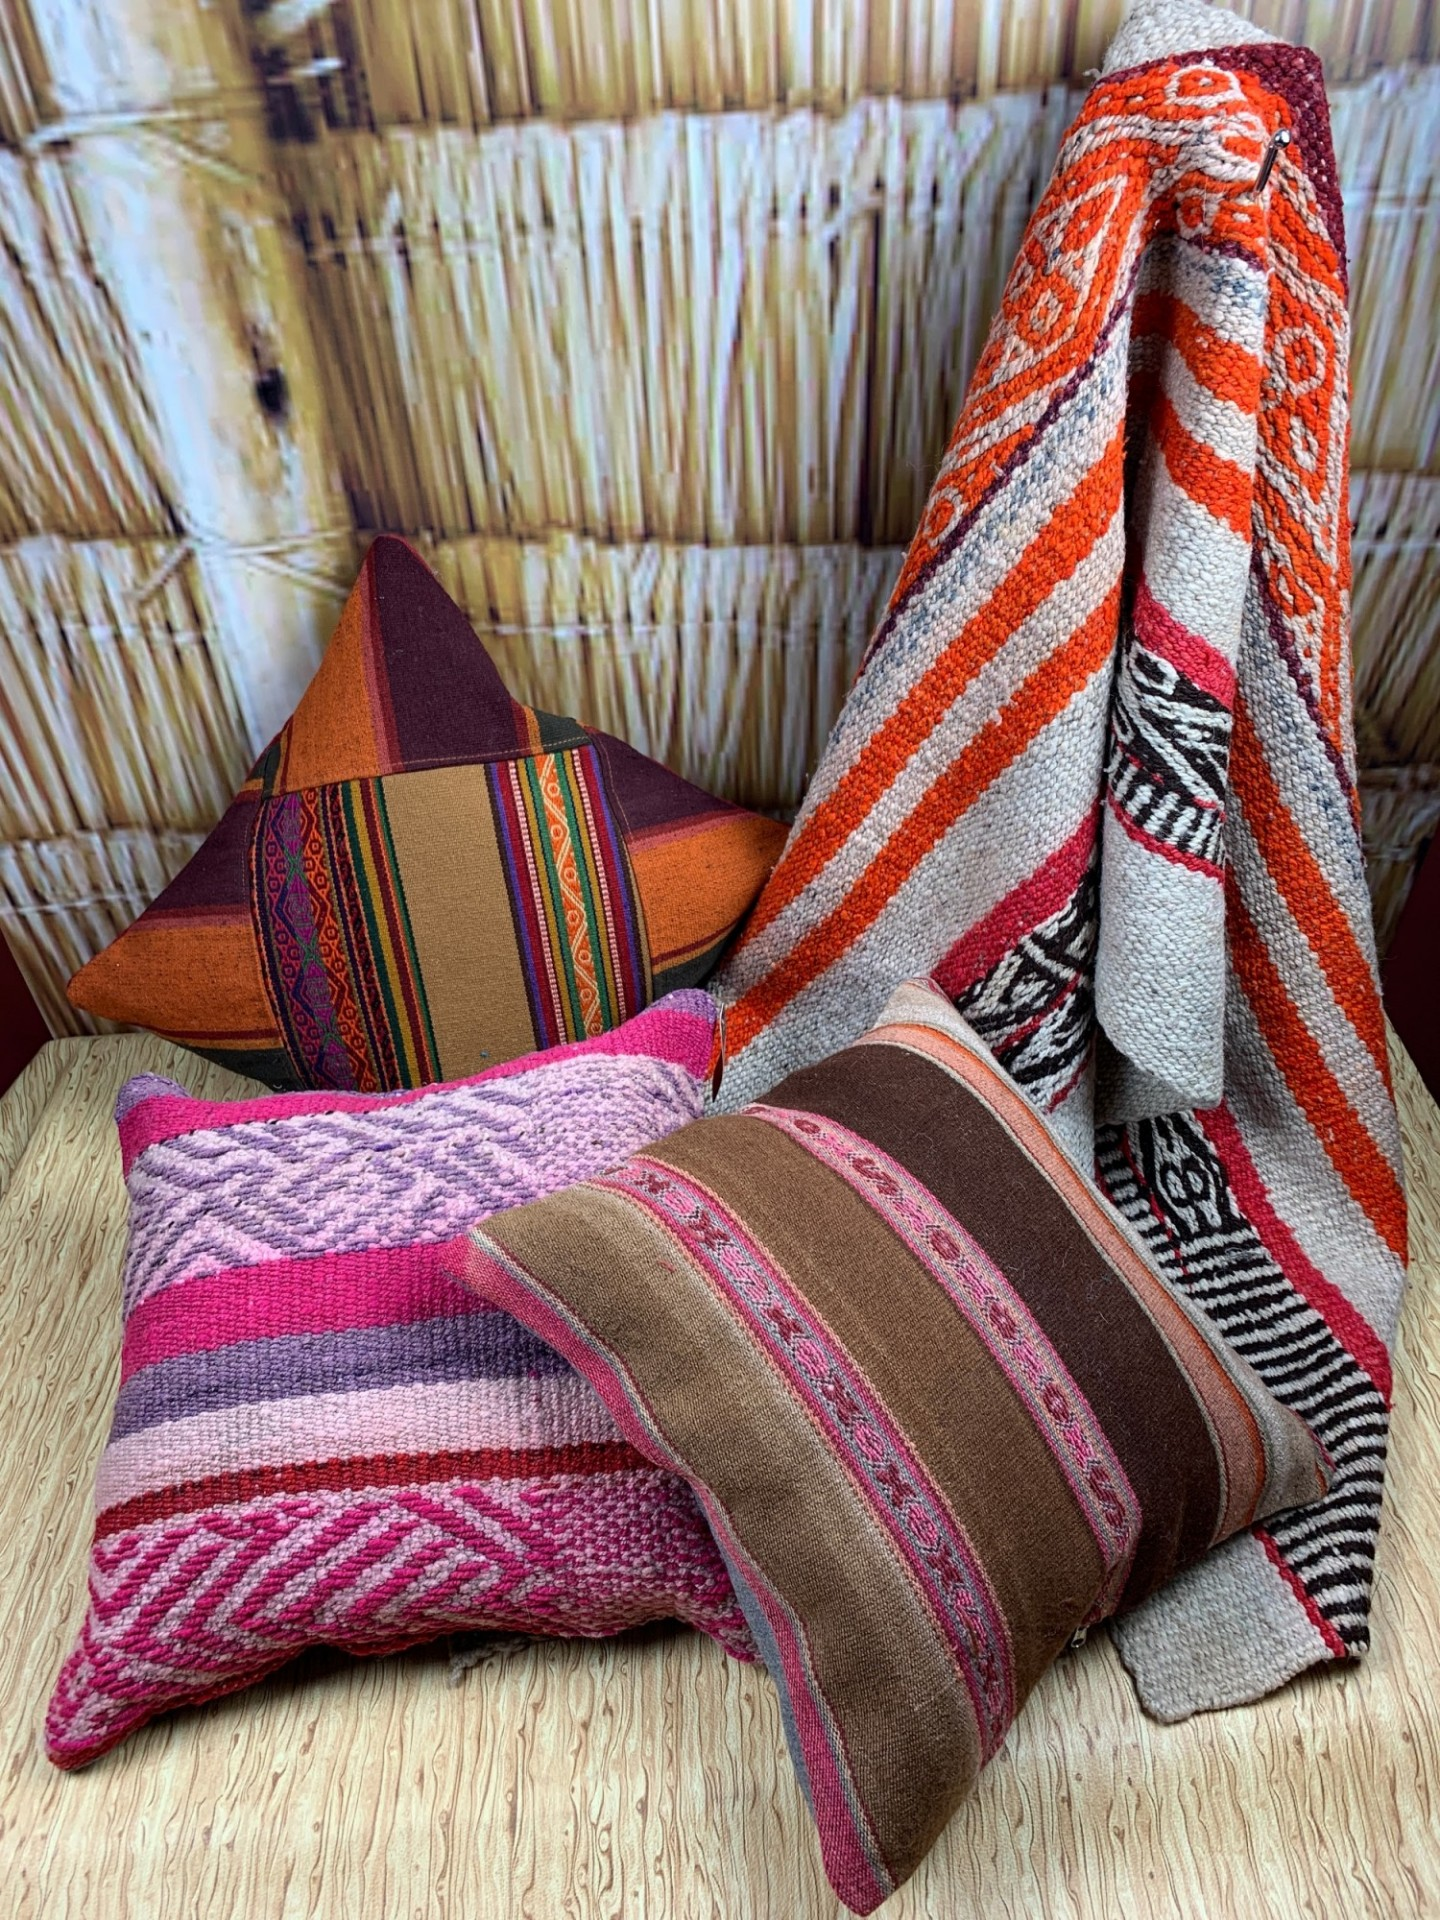 Three pillows and rug handcrafted with several colors mixed throughout